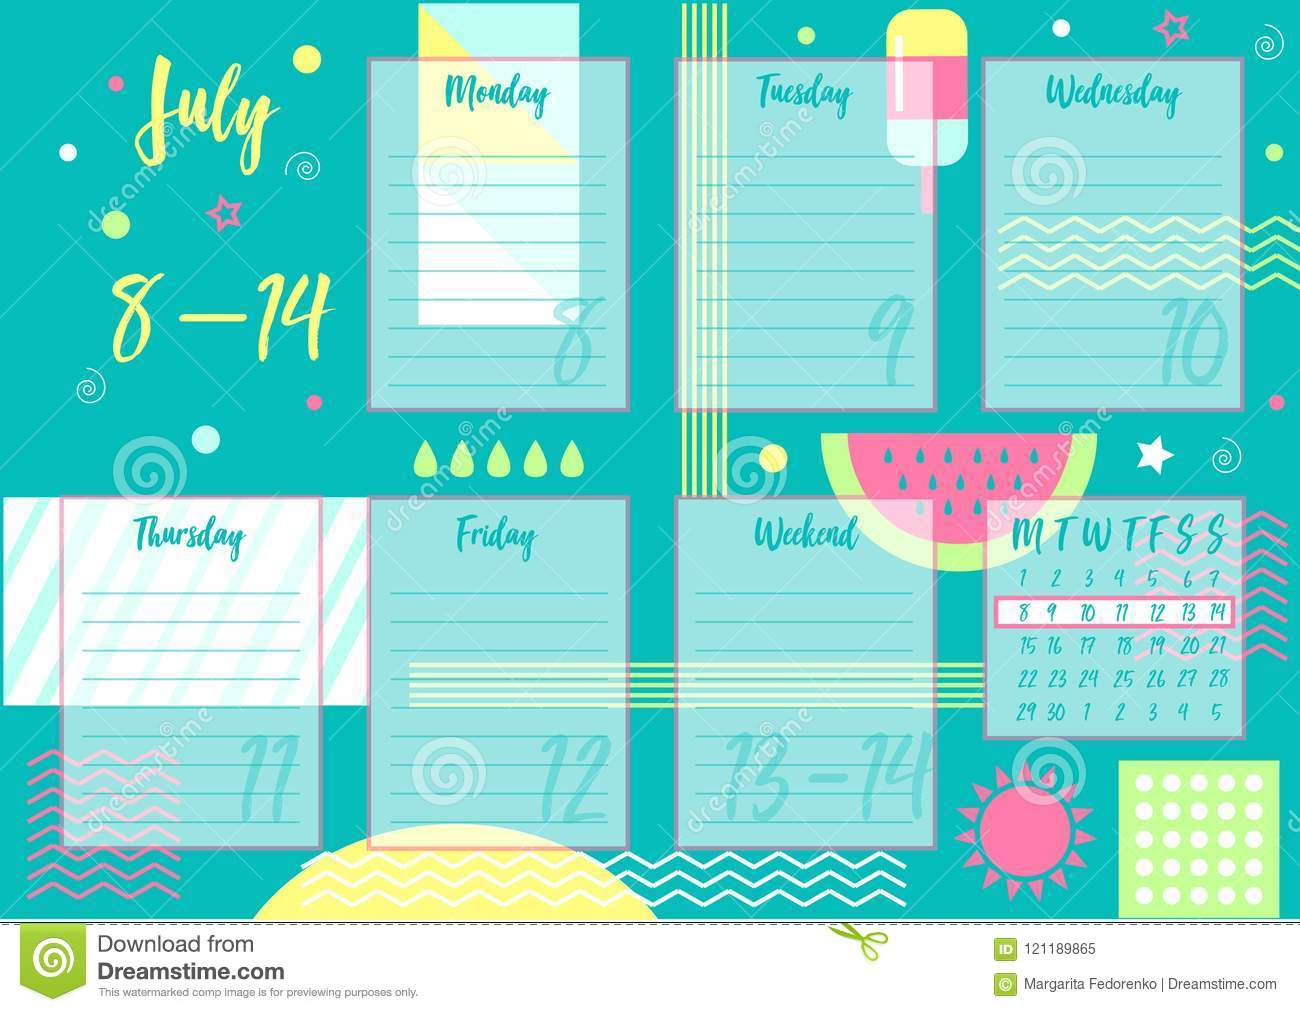 Calendario Julio 2019 Vector.Vector Illustration Of July 2019 Weekly Planner Stock Vector